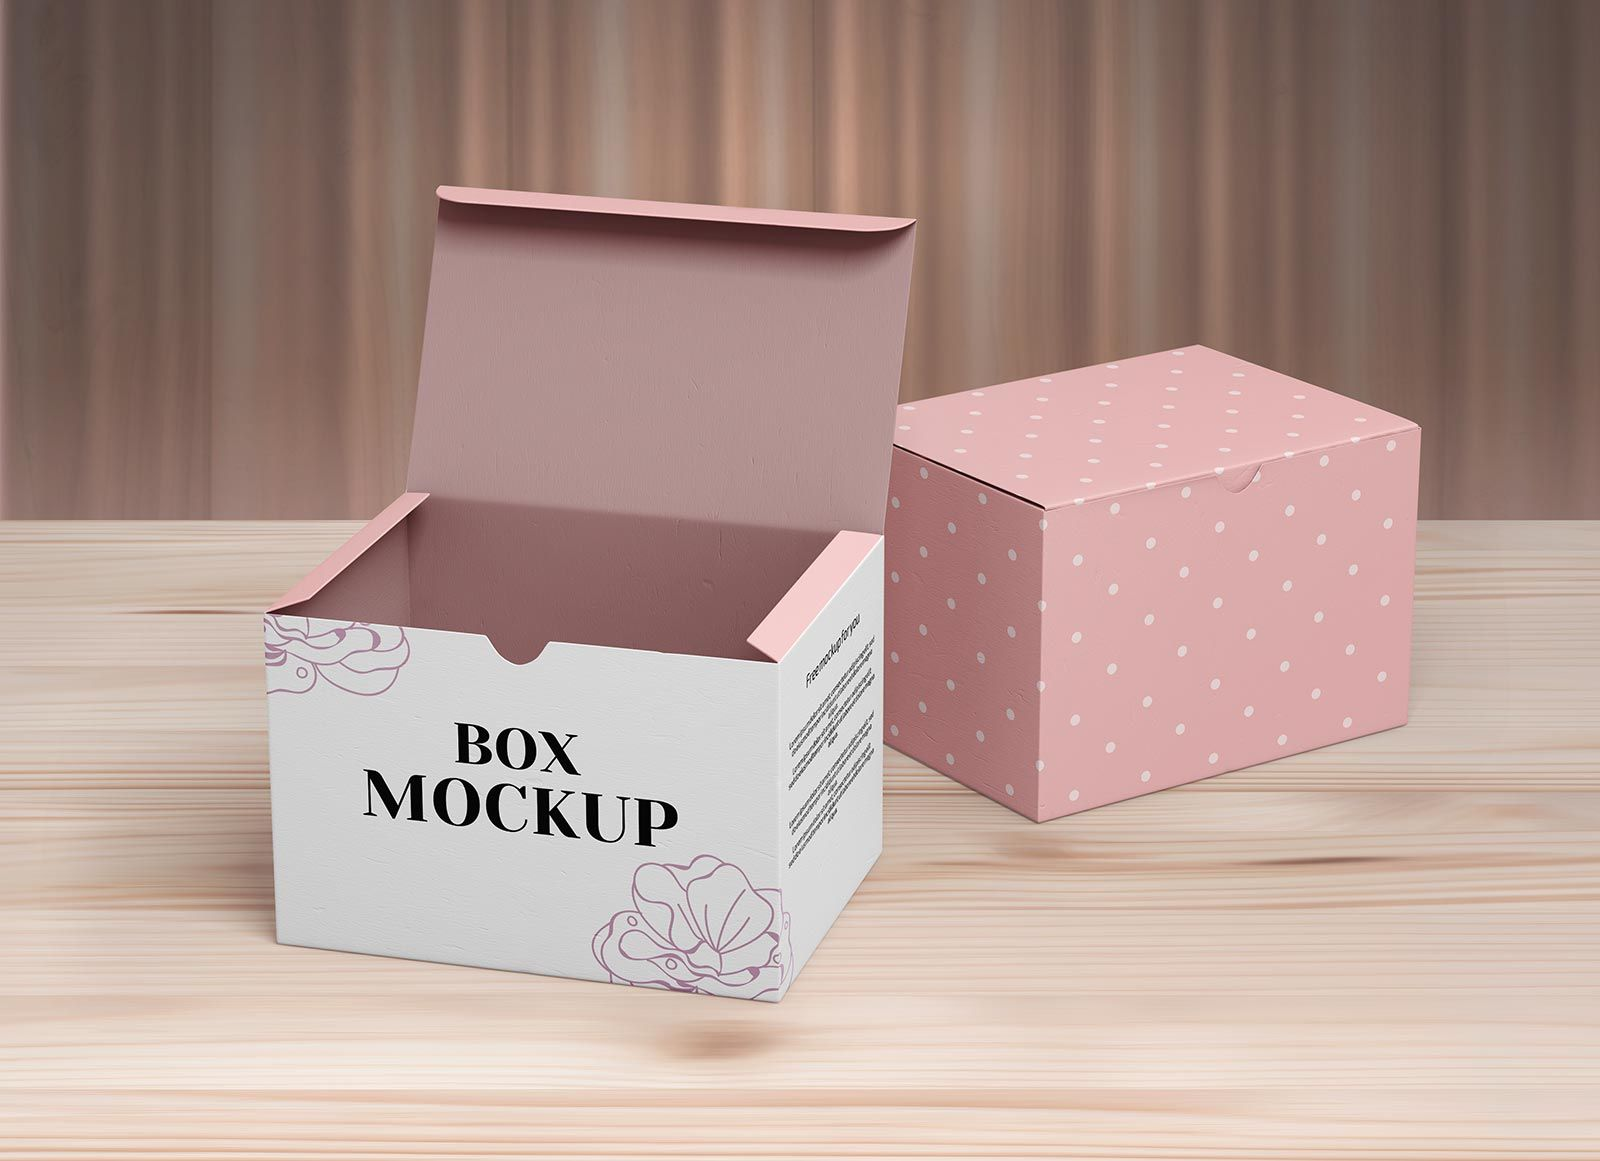 Download Closed Open Box Packaging Mockup Box Mockup Packaging Mockup Cosmetics Mockup